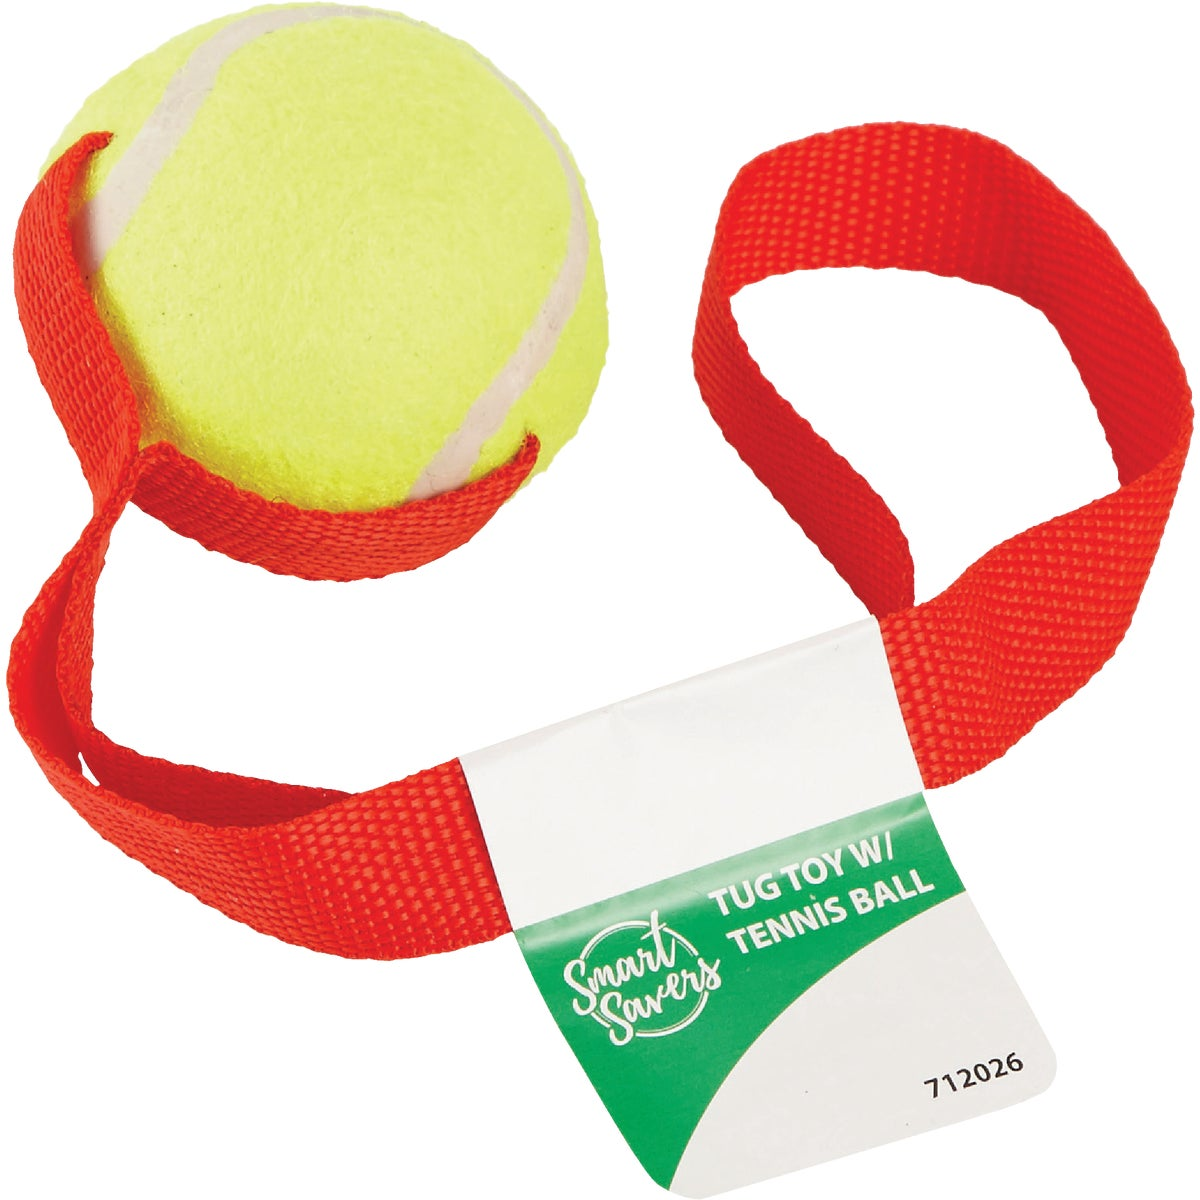 TUG TOY W/TENNIS BALL - CC401019 by Do it Best